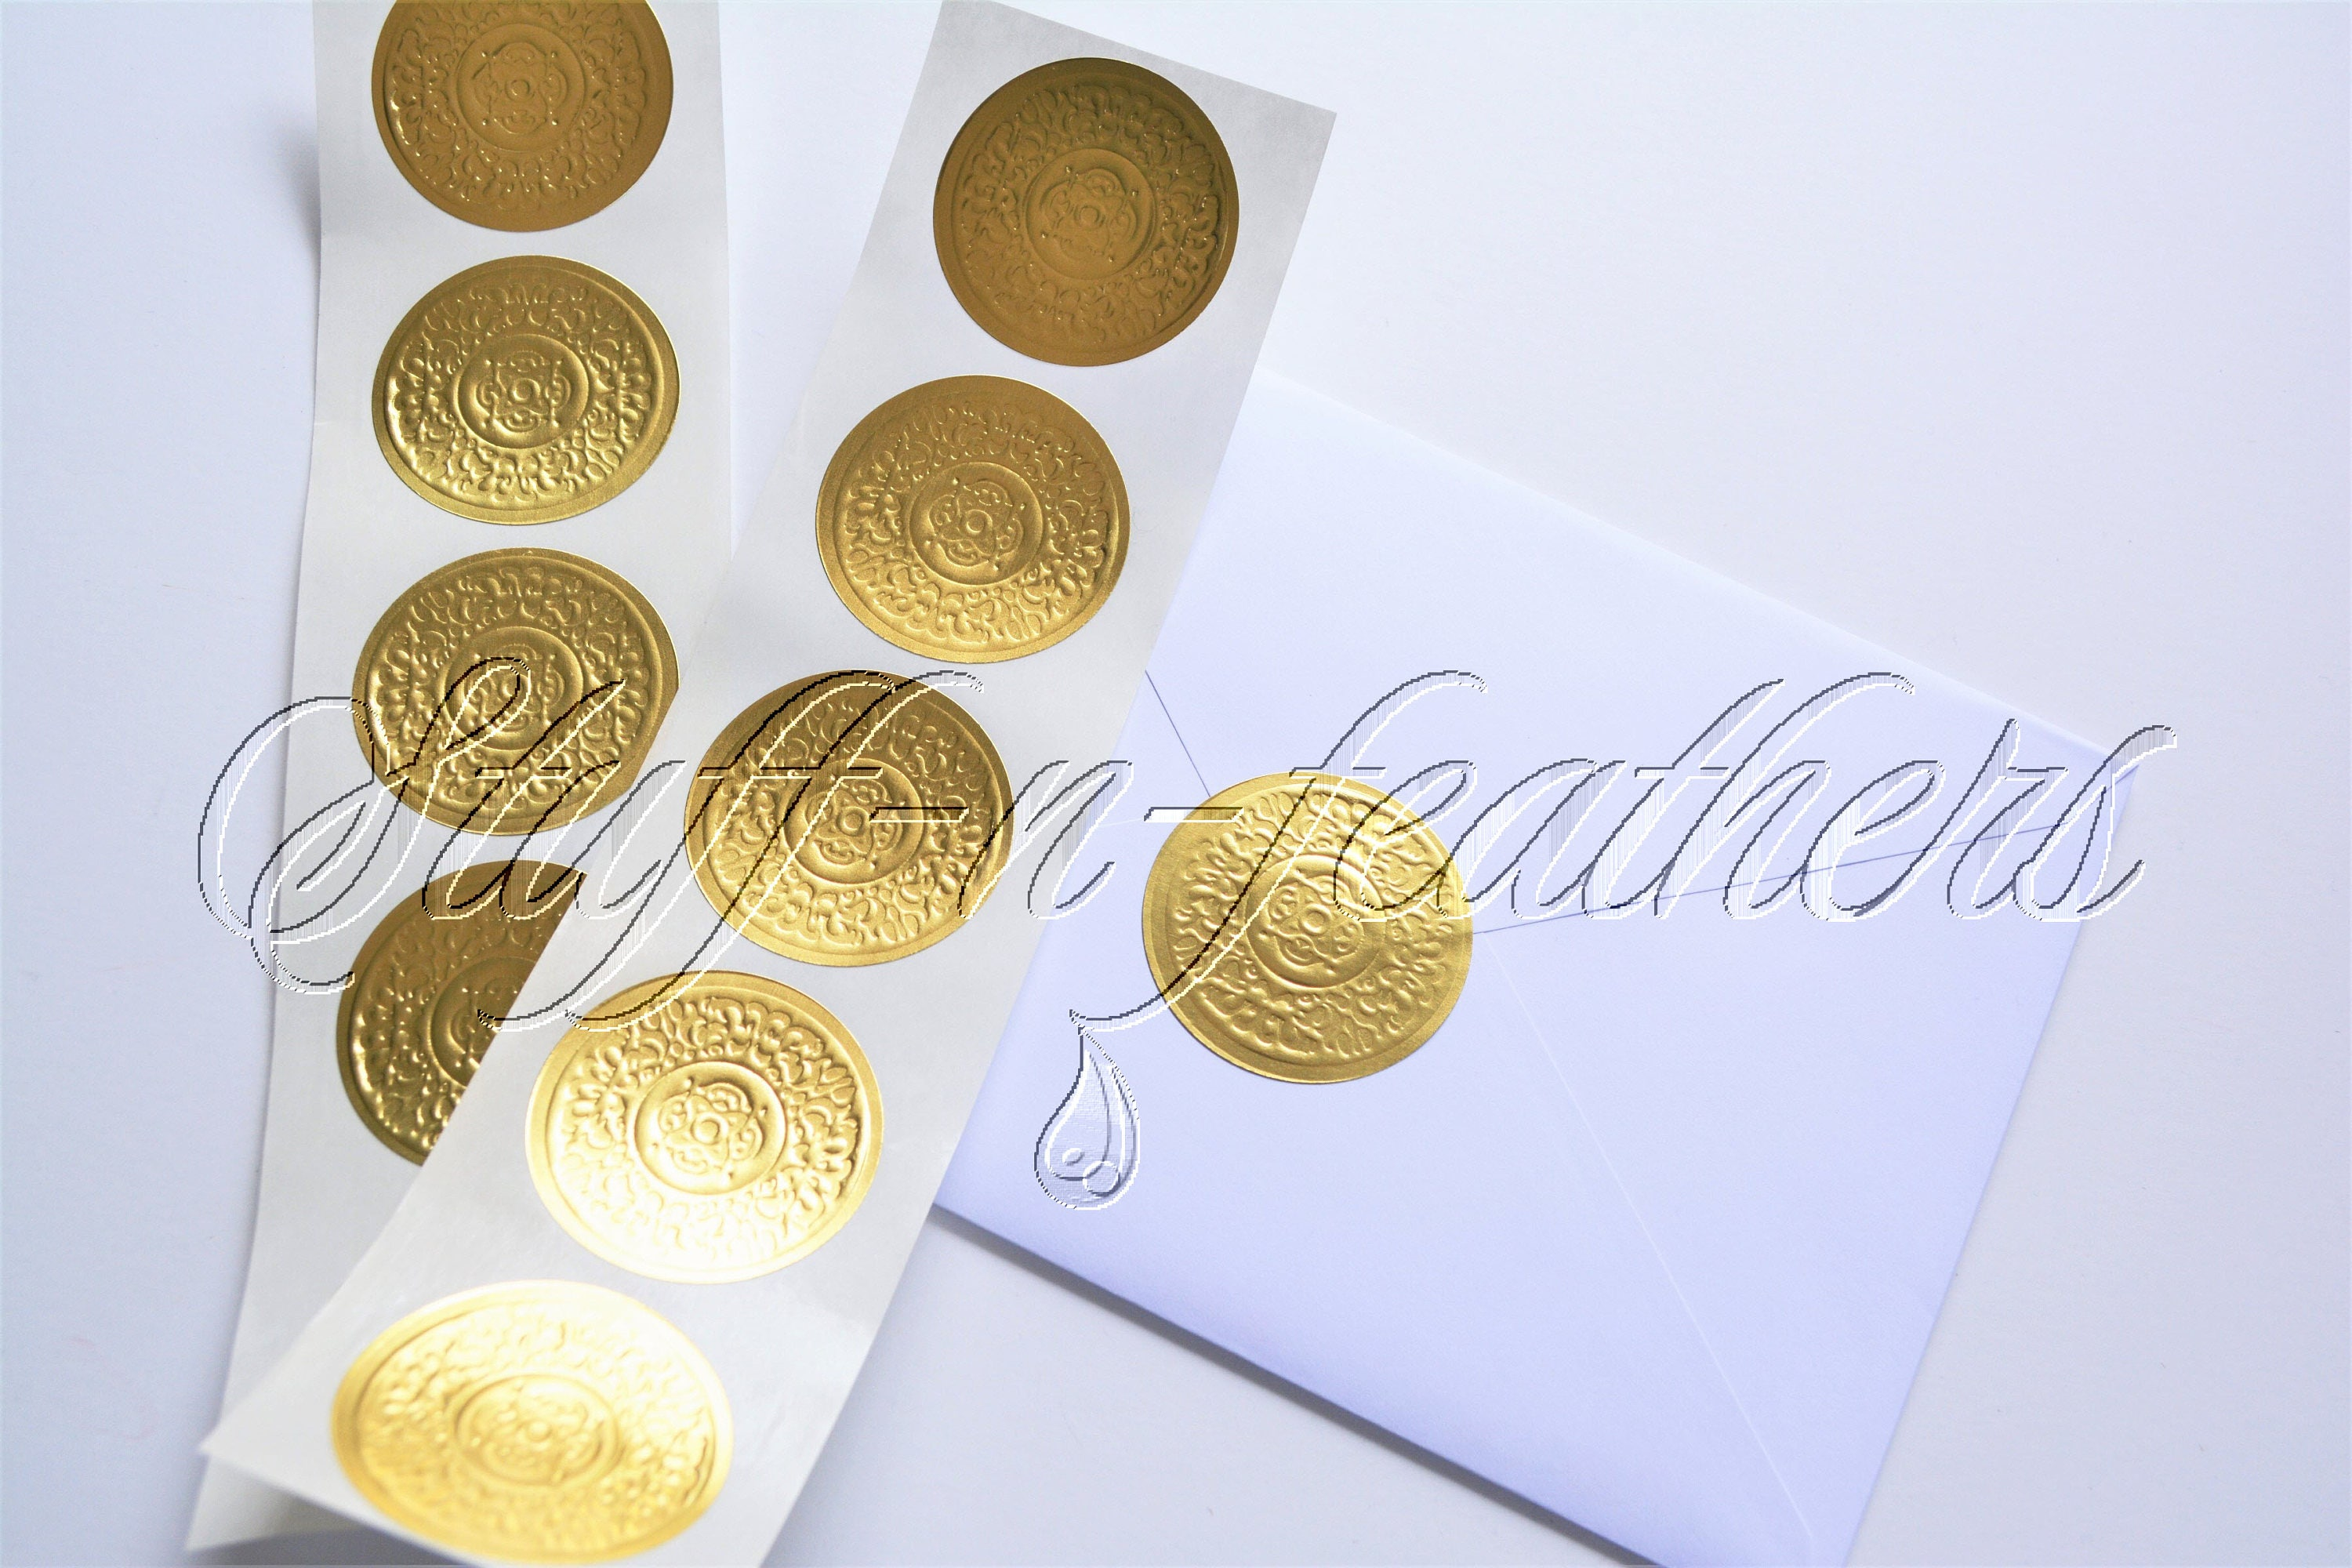 Gold foil sticker seals small round embossed stickers 1 5 in envelope seal invitation seal wedding gift gold seals gold stickers d15sg